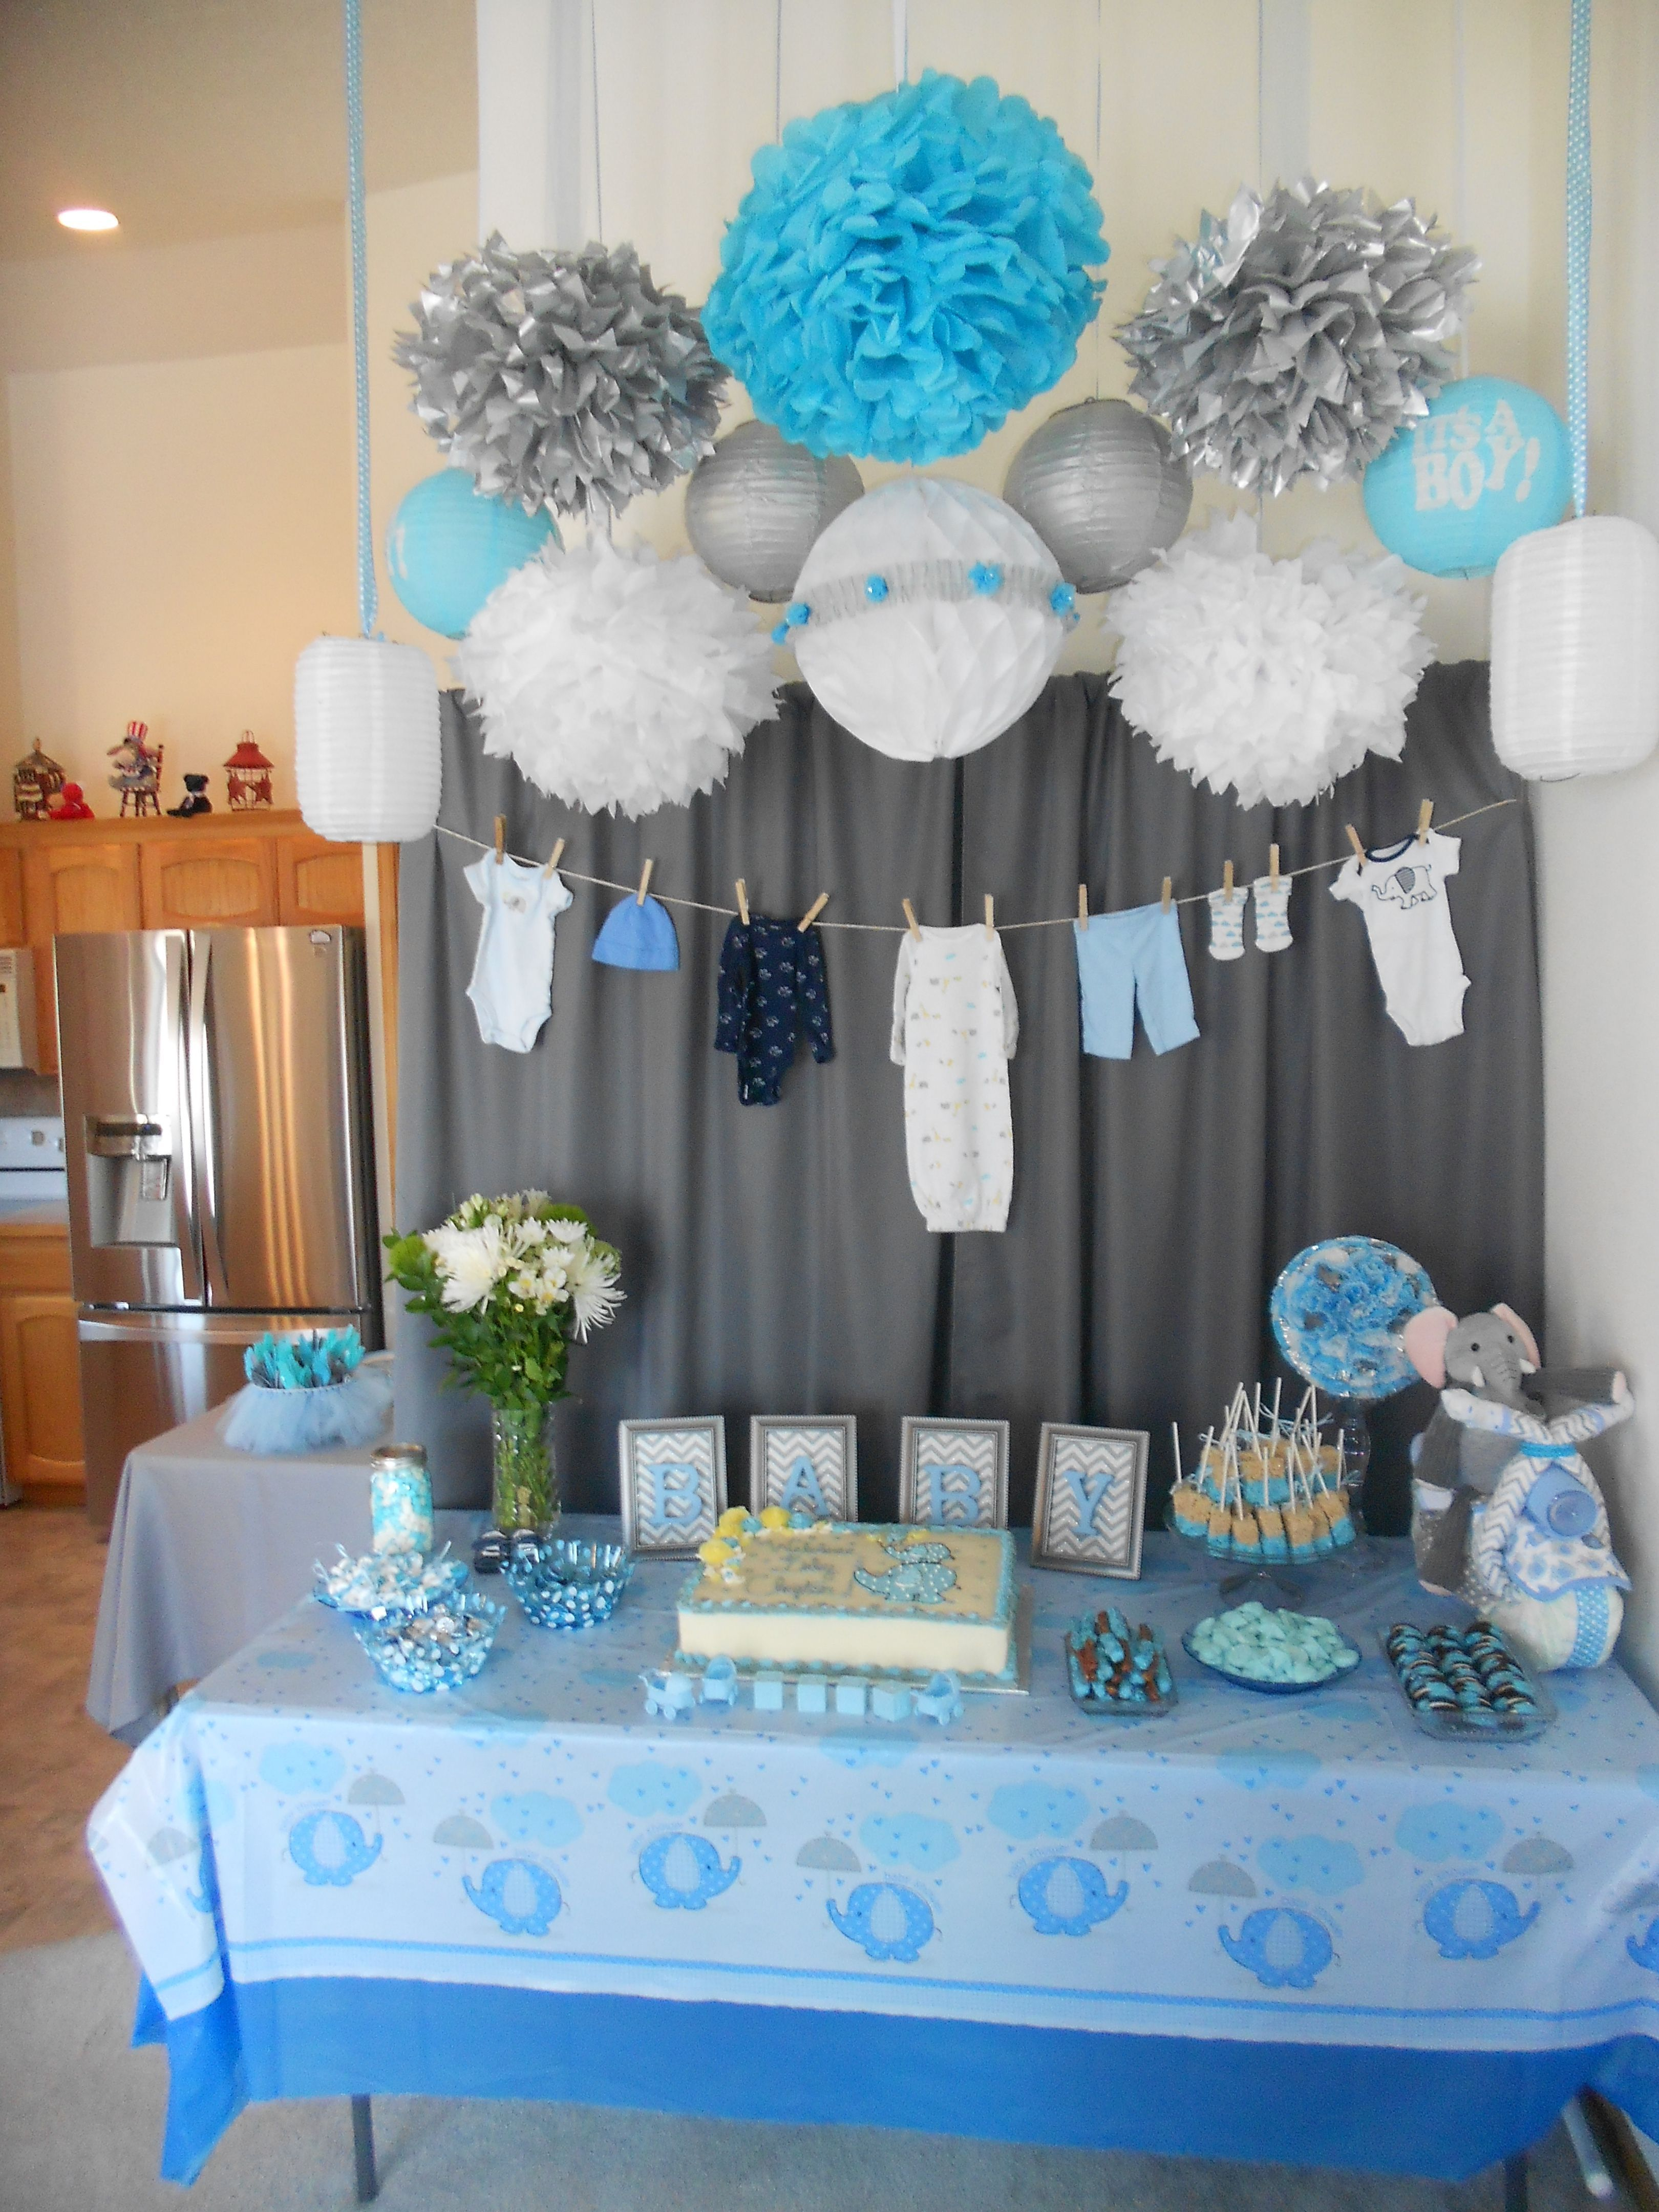 Pin By Cassie Nelson On Hope S Baby Shower Ideas In 2020 Baby Shower Decorations For Boys Simple Baby Shower Baby Shower Diy